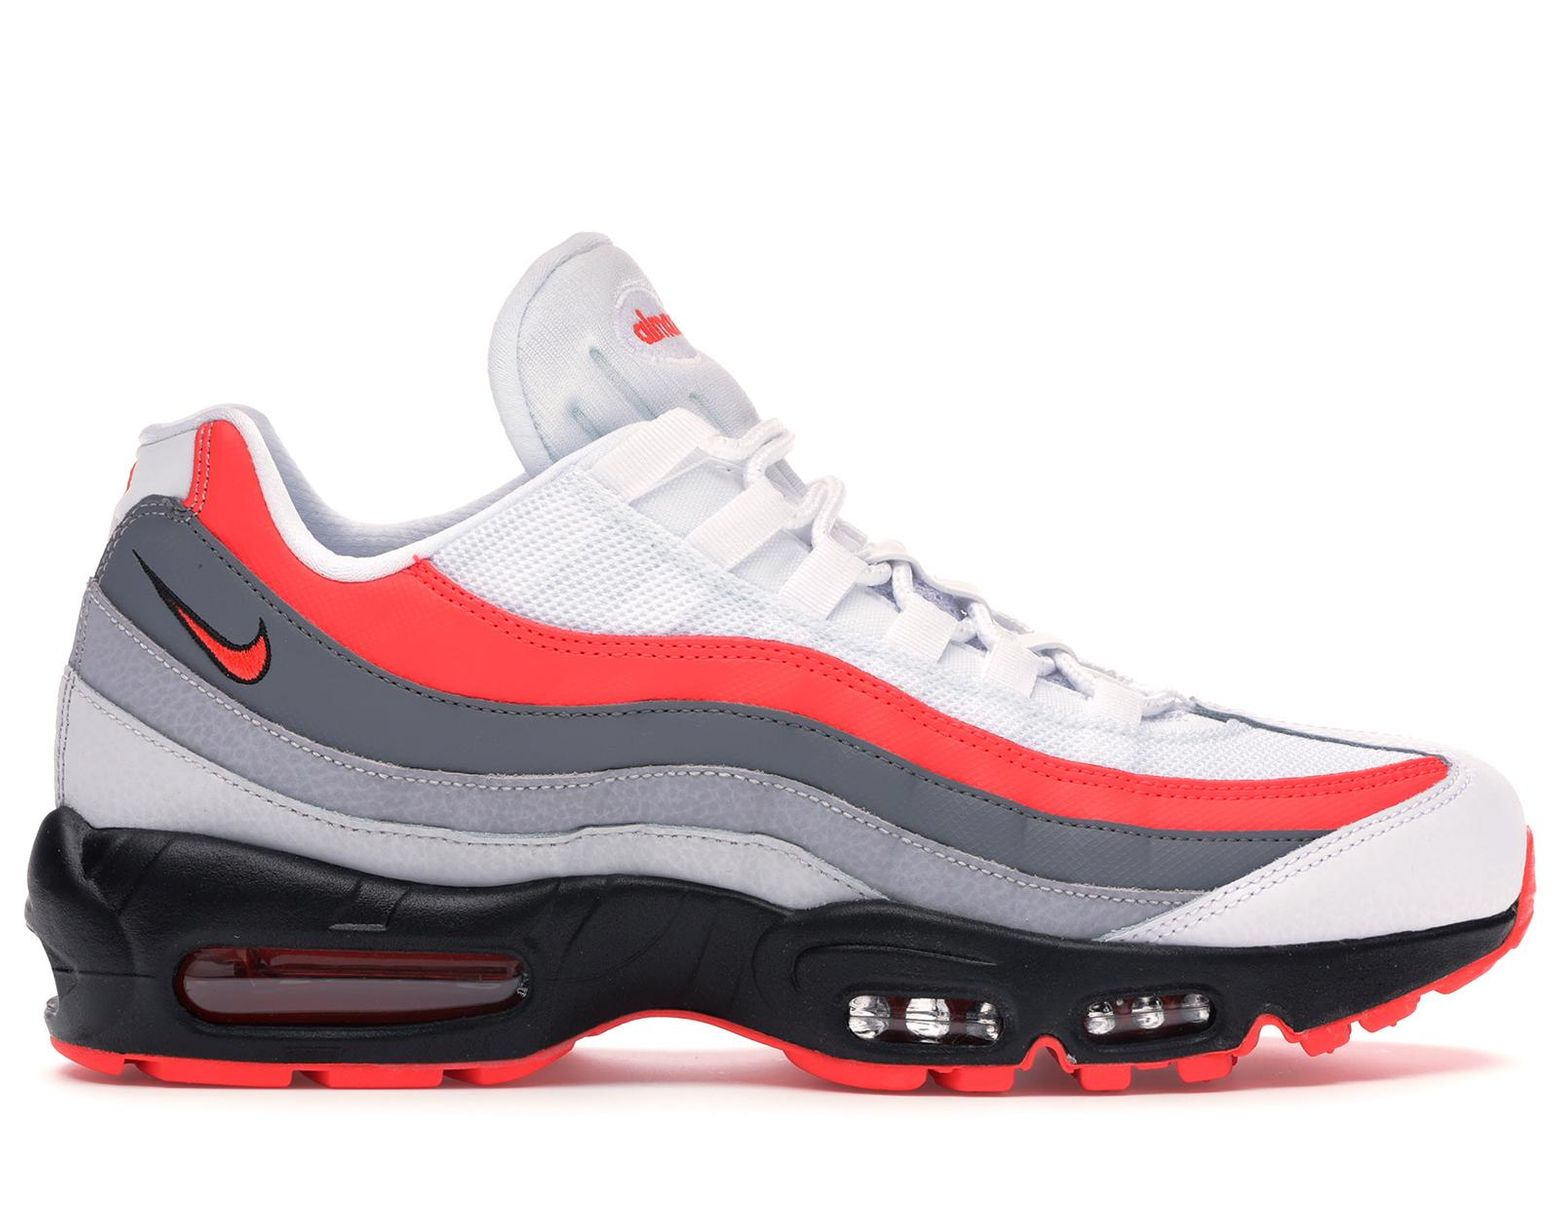 2018 sneakers in stock outlet boutique Men's White Air Max 95 Bright Crimson Comet